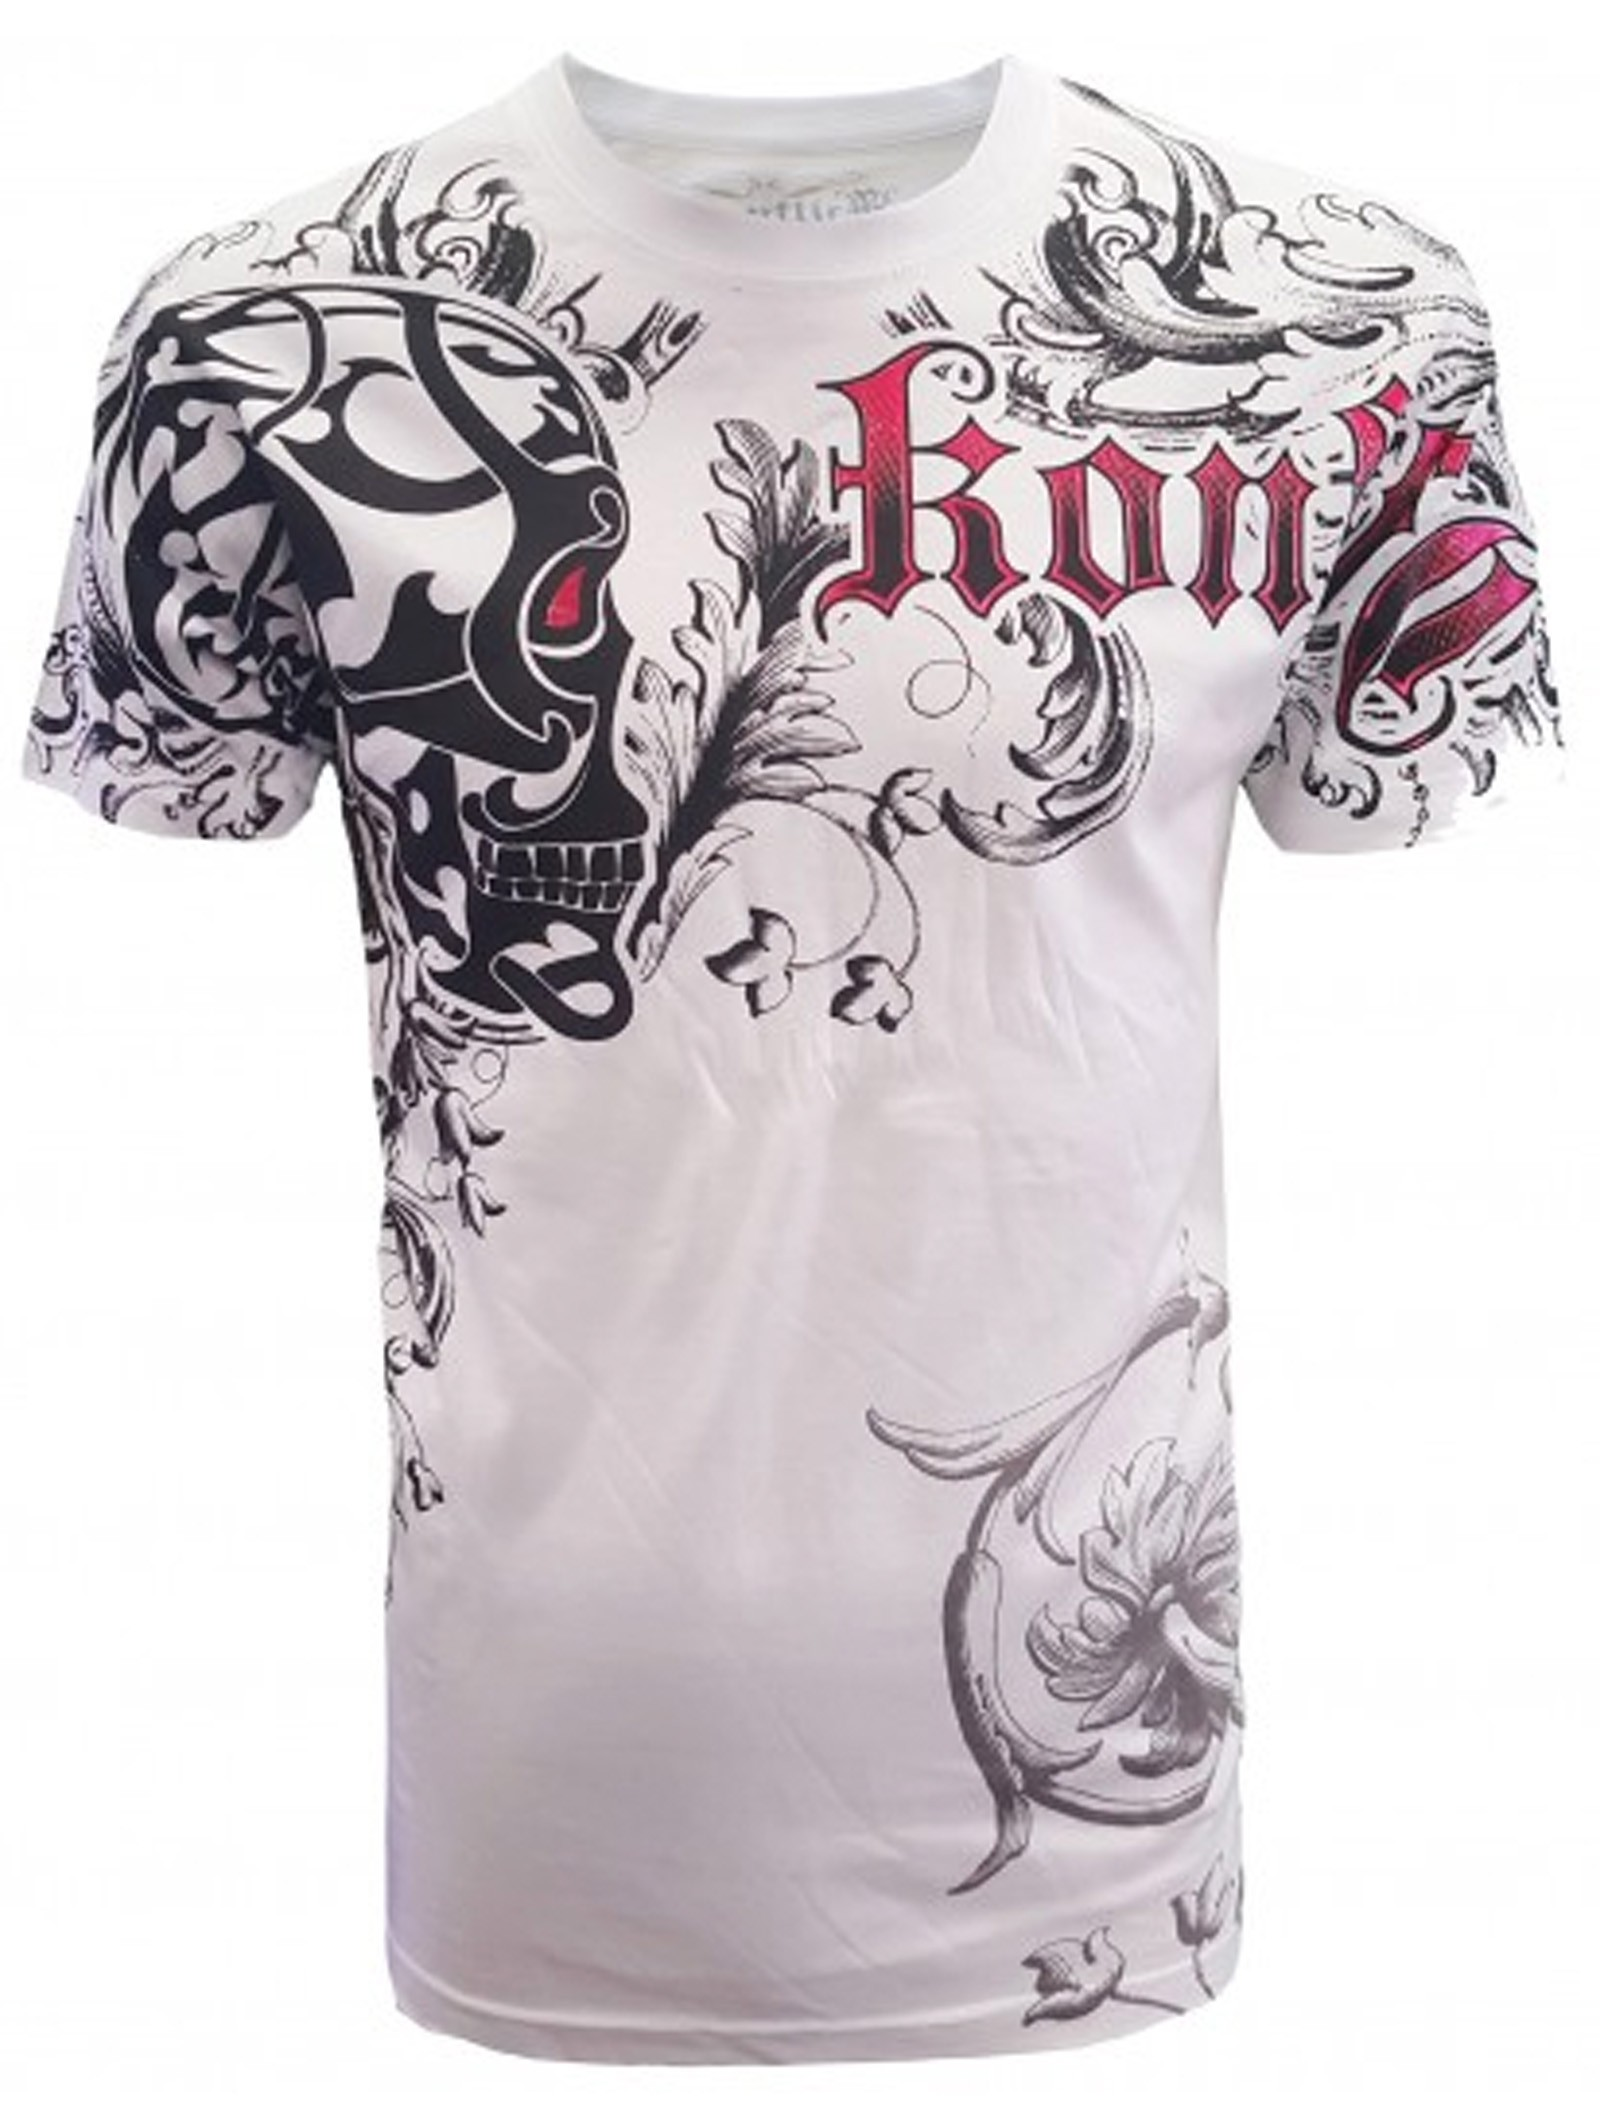 Konflic Clothing - Skull Shied T-Shirt Front